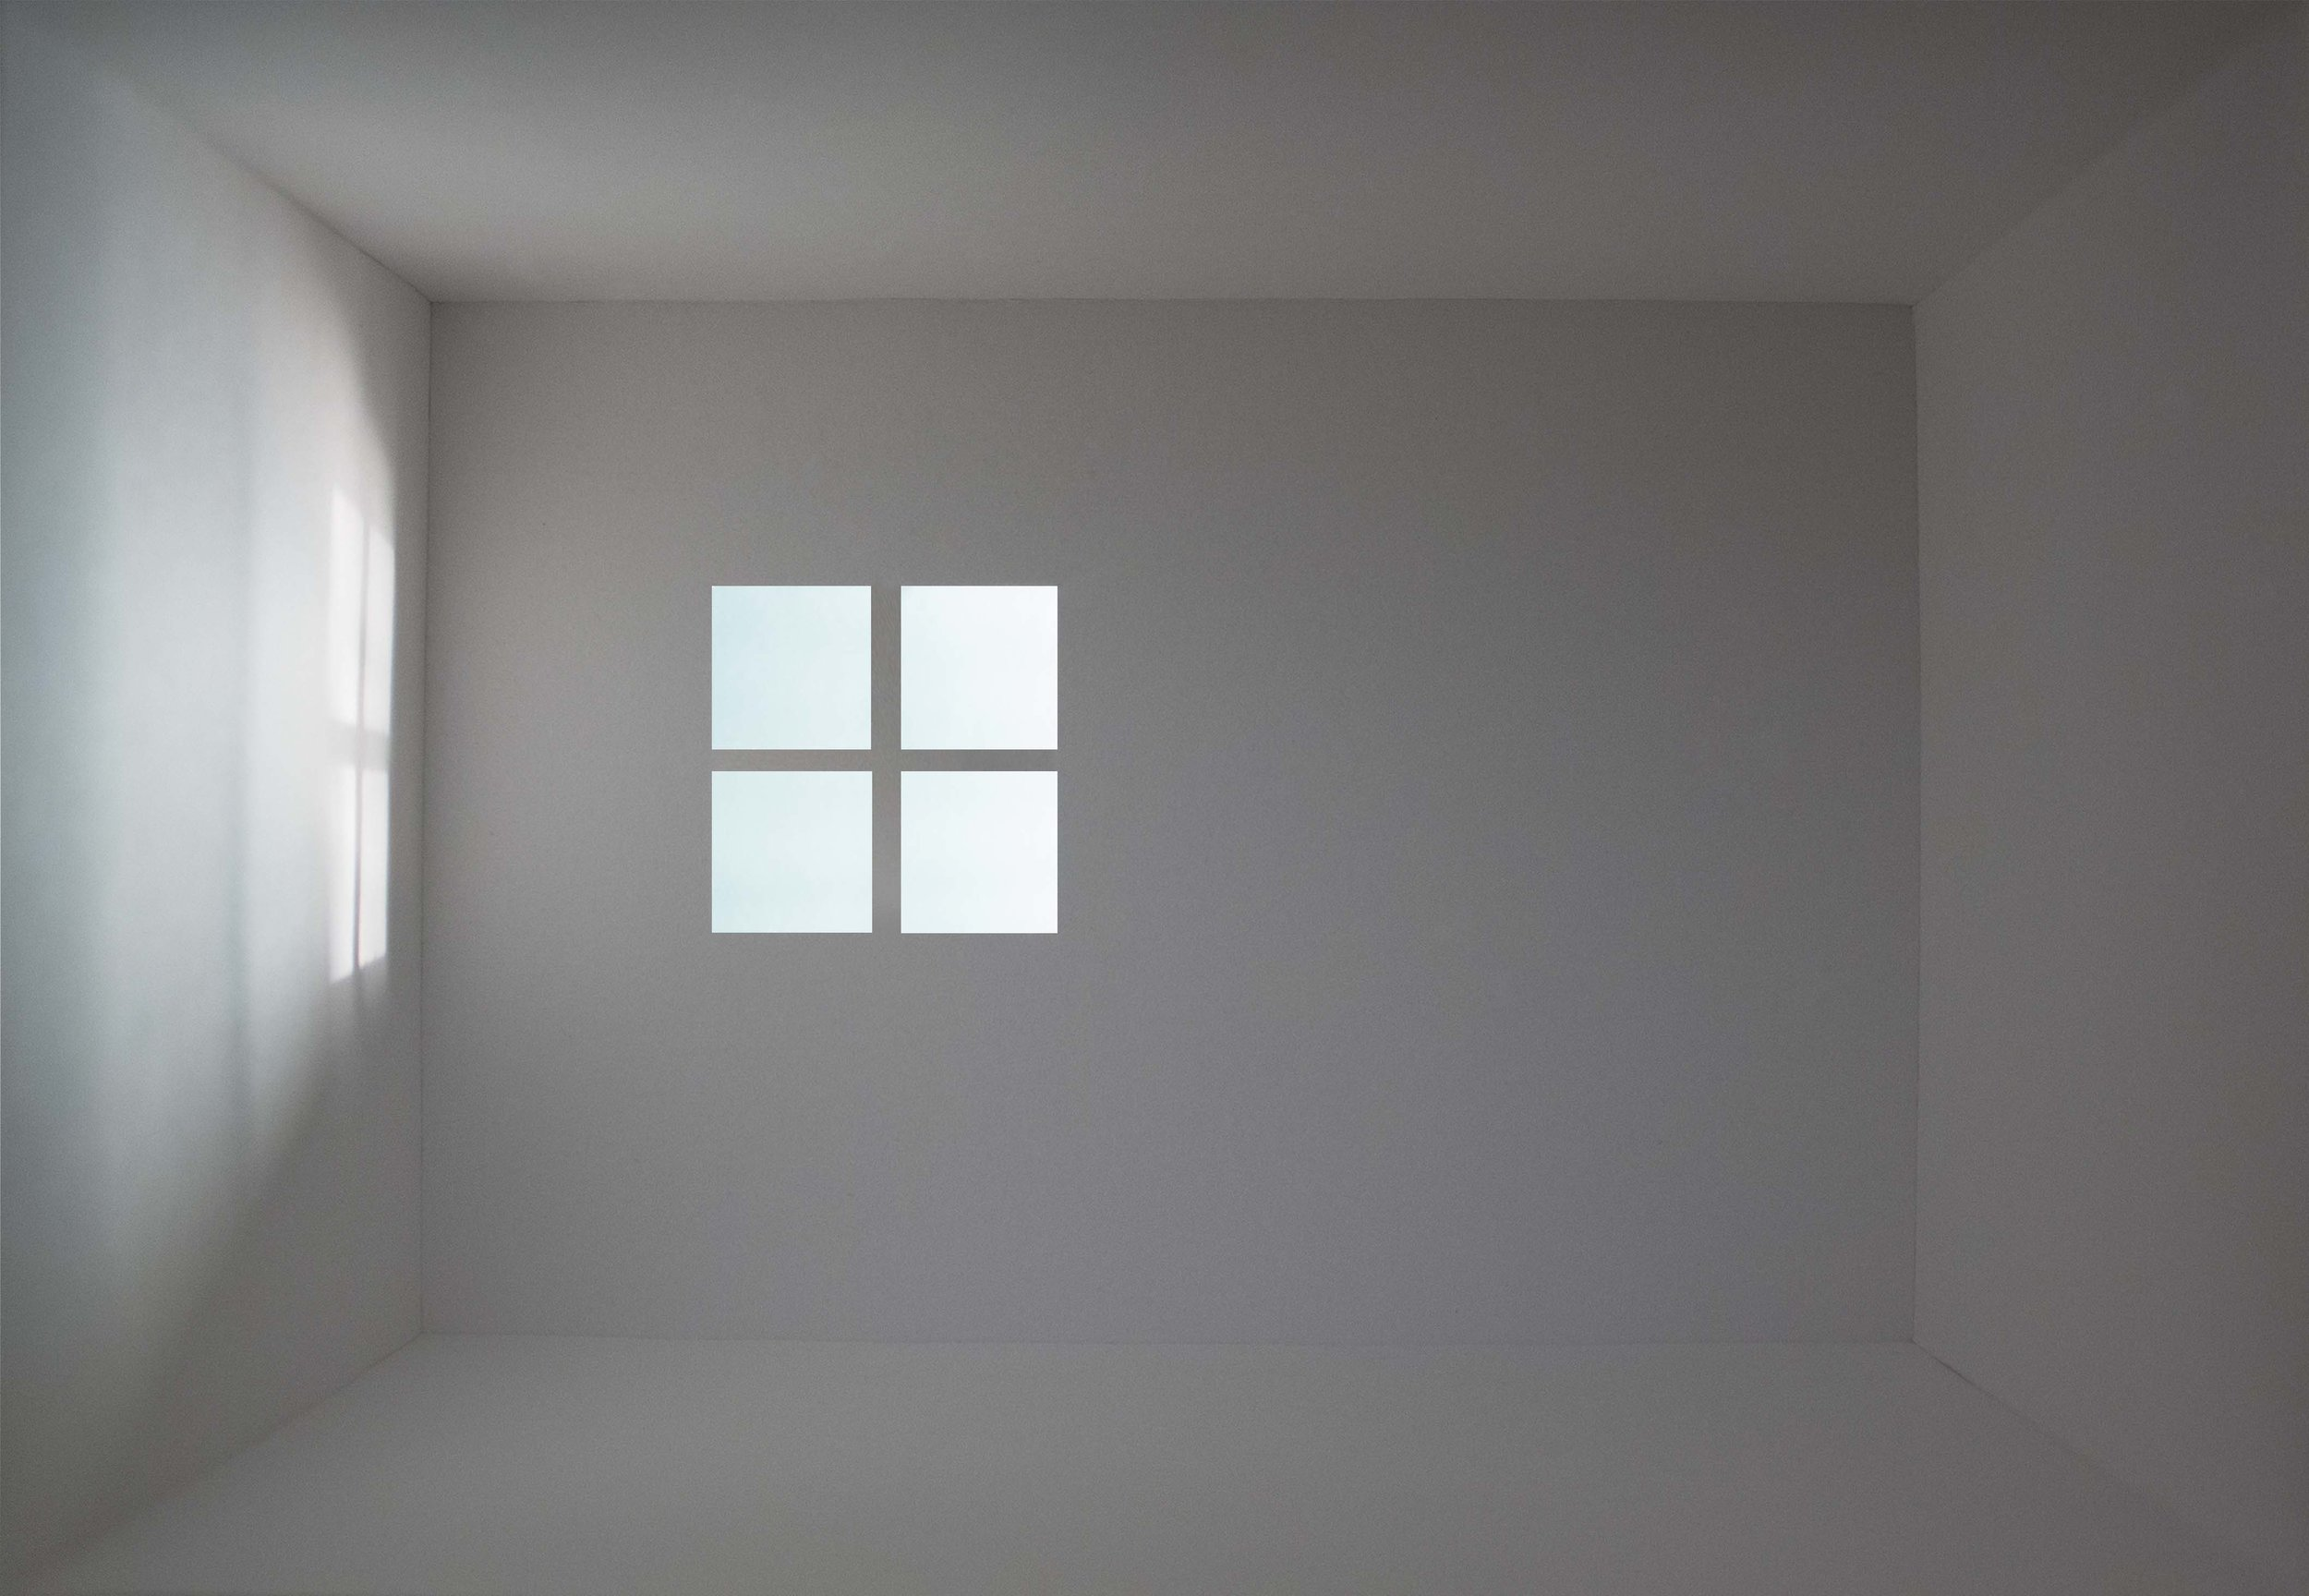 Amy M. Ho,  Window II , 2014, Single channel projection, Dimensions variable, Courtesy Chandra Cerrito Contemporary